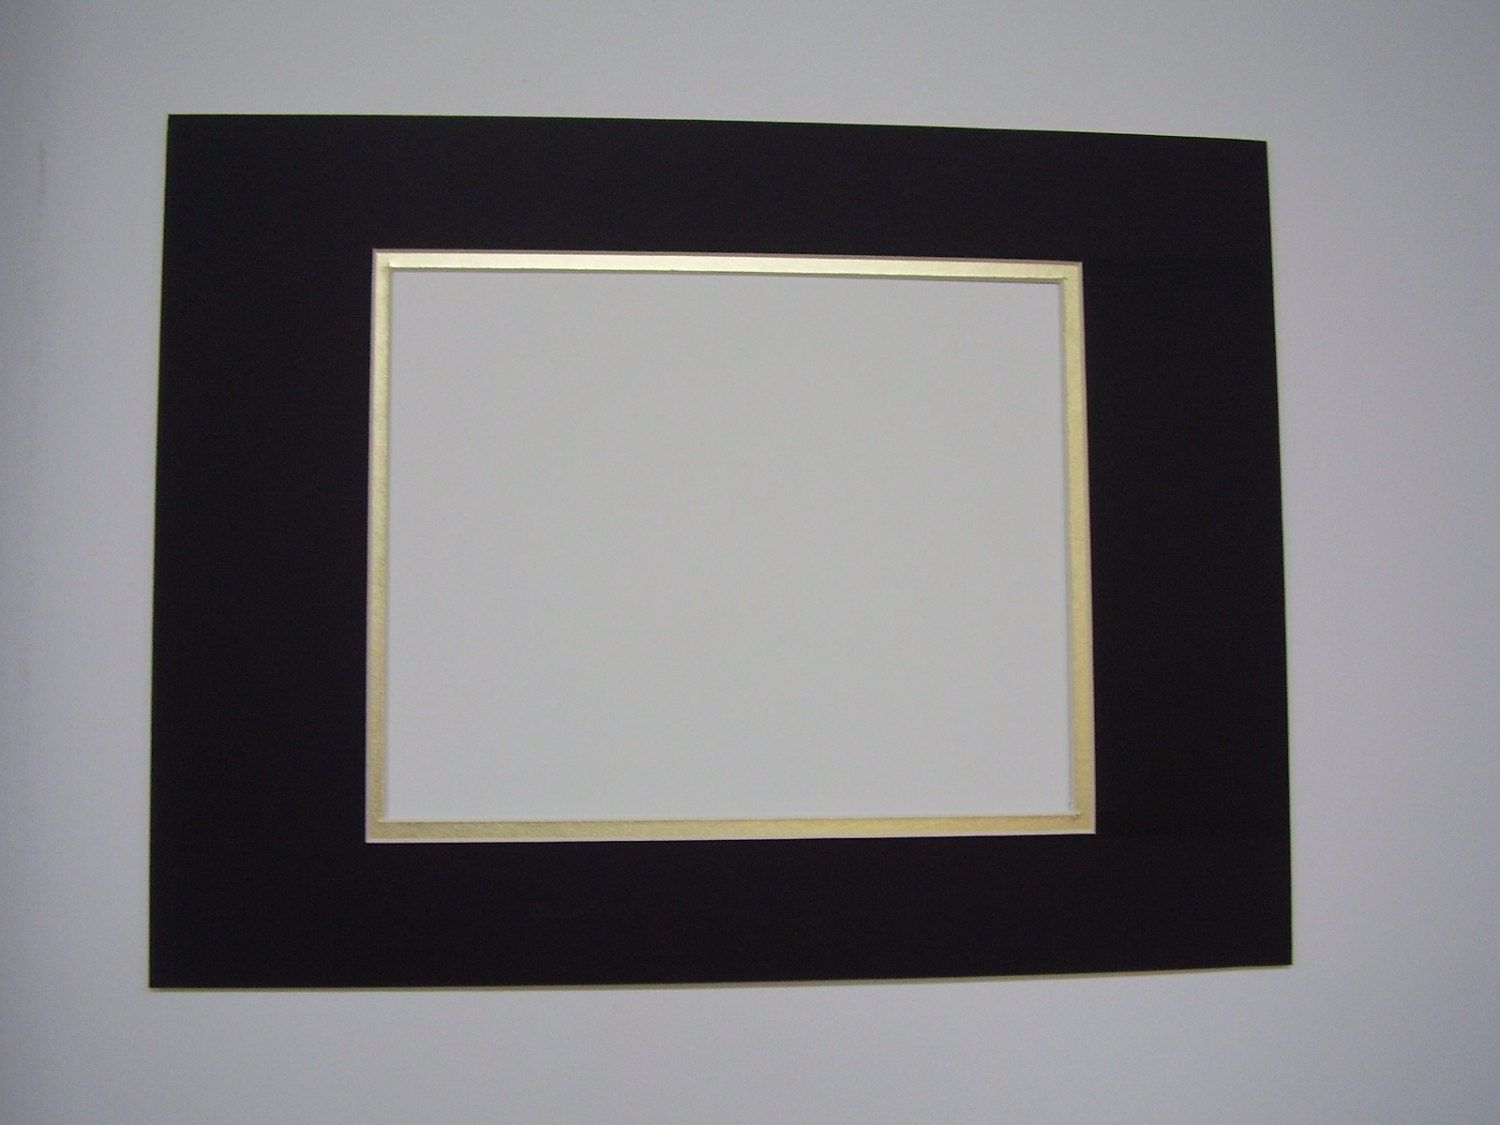 Picture Framing Mat Black With Gold Liner 12x16 For 8x10